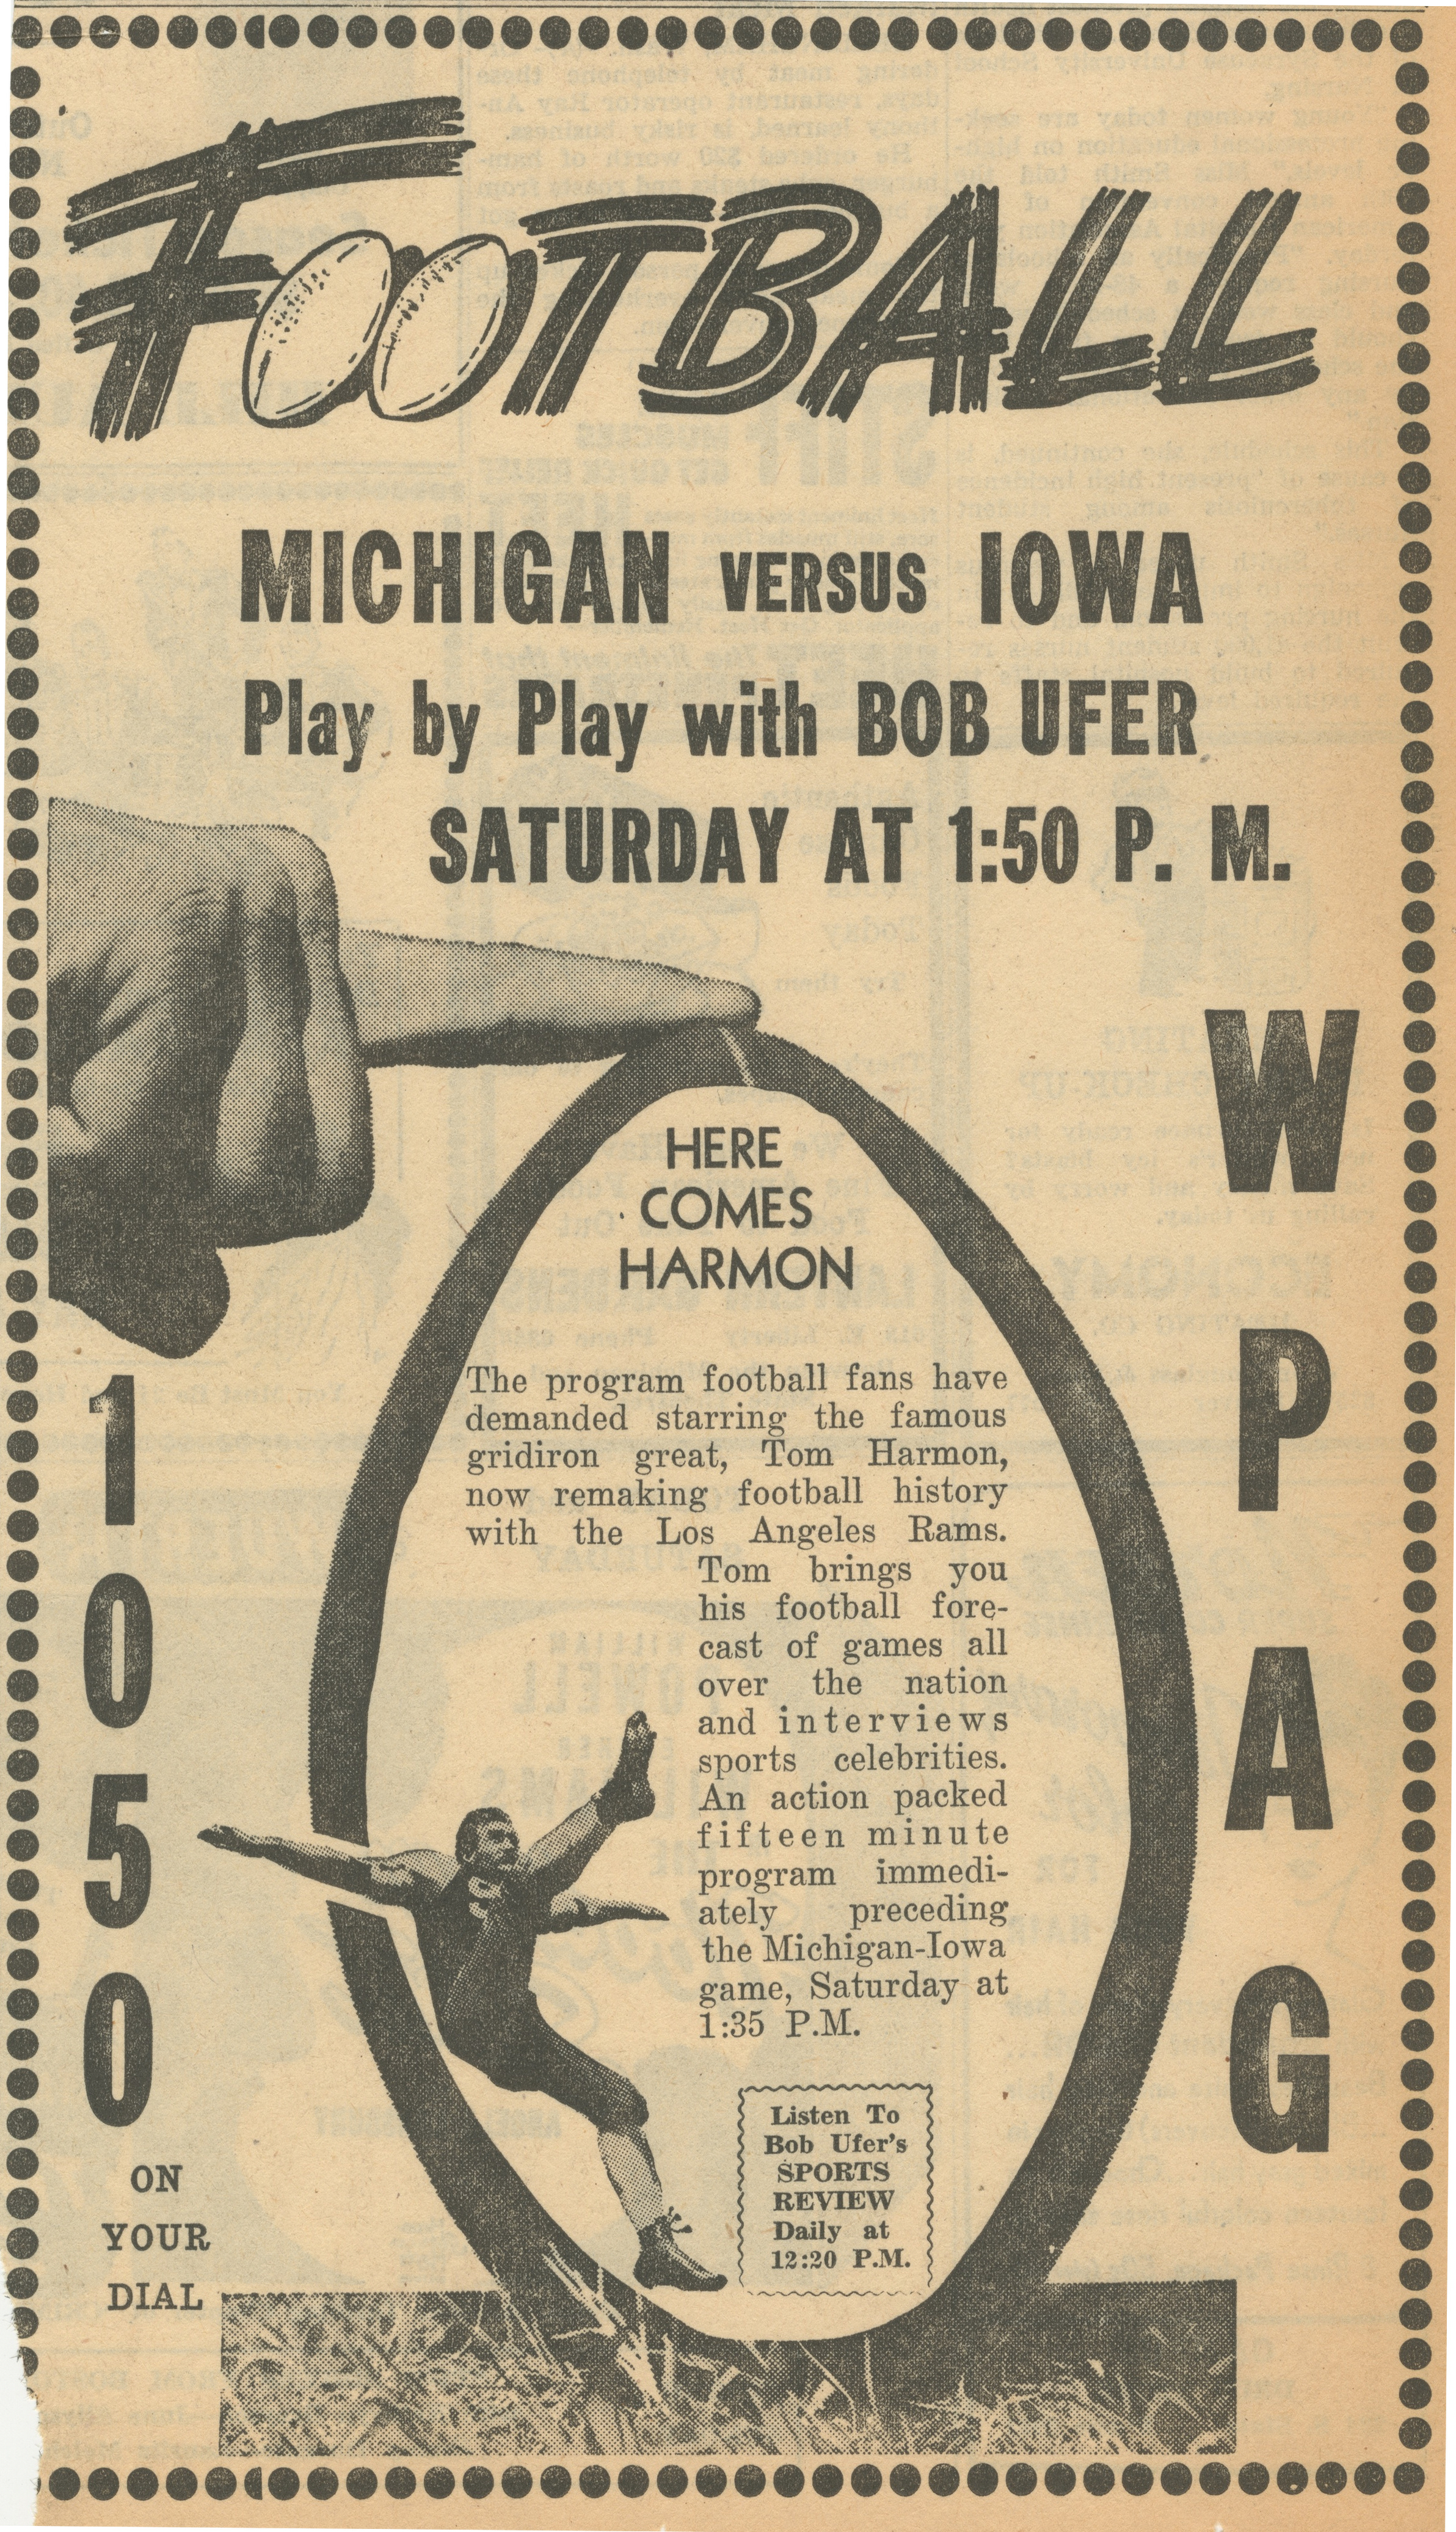 Football Michigan versus Iowa Play by Play With Bob Ufer image